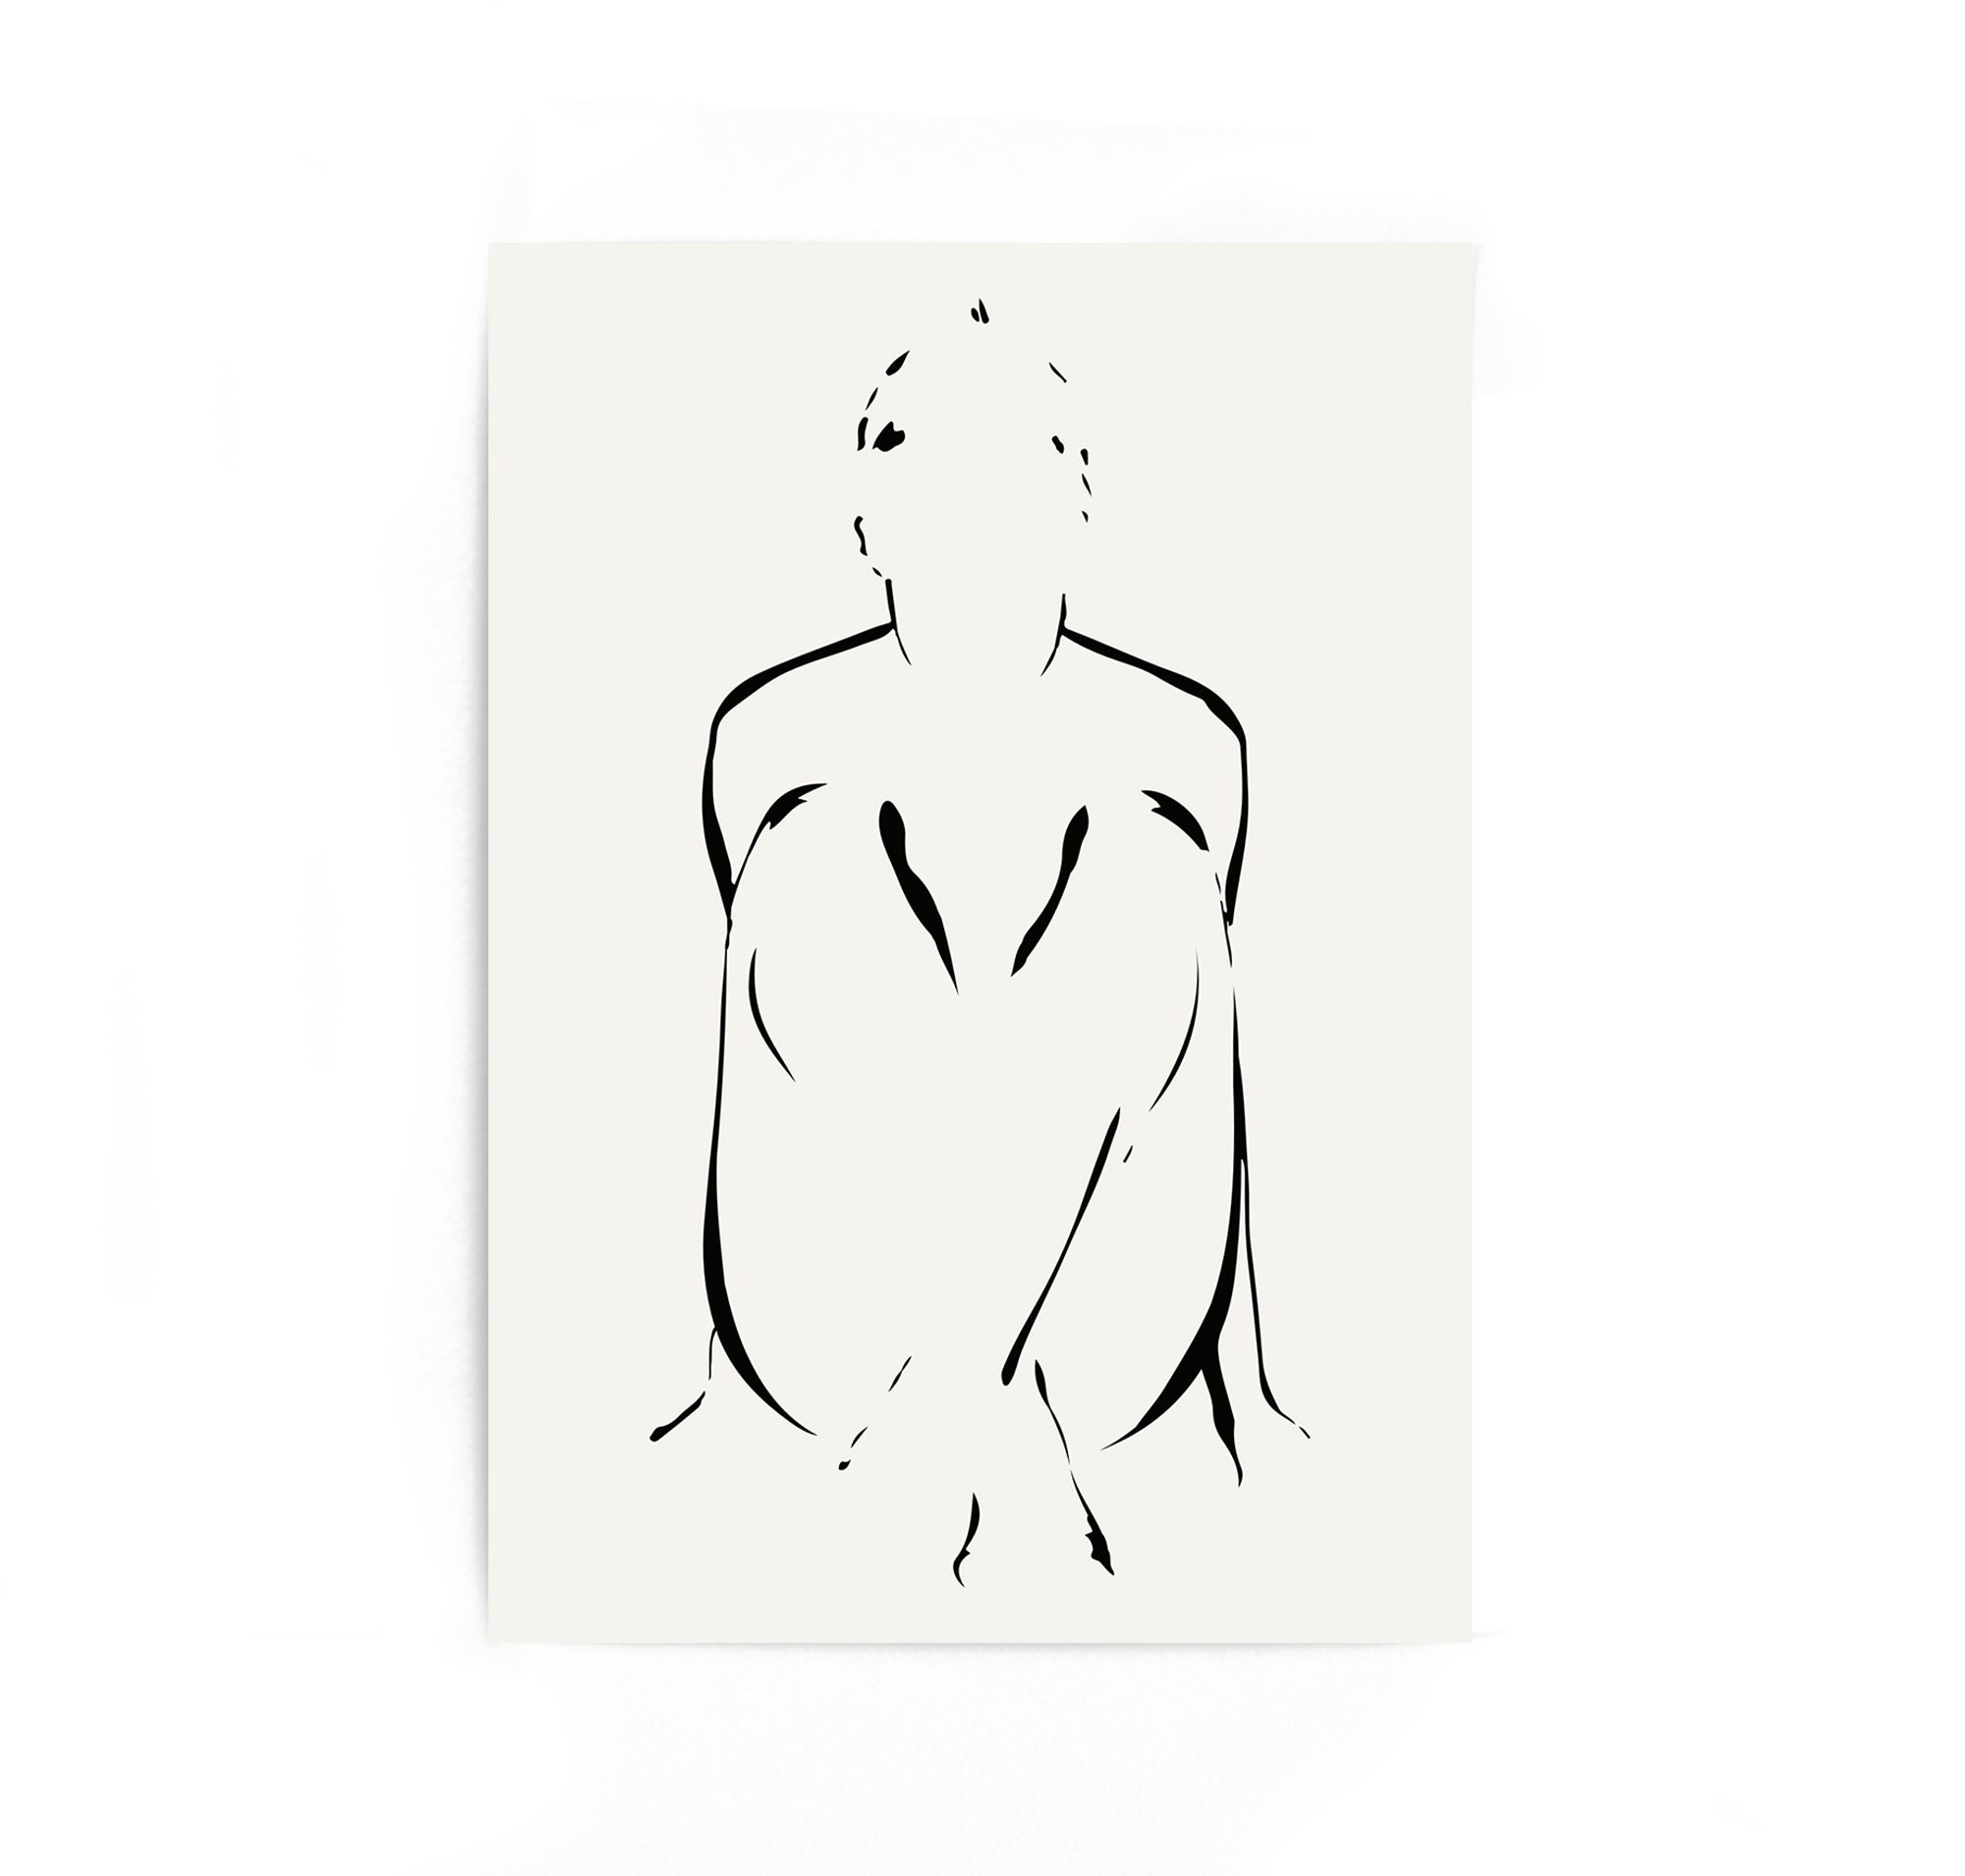 Pencil sketch figure drawing abstract black and white art nude sketch simple line art print from original artwork single print sale shipping